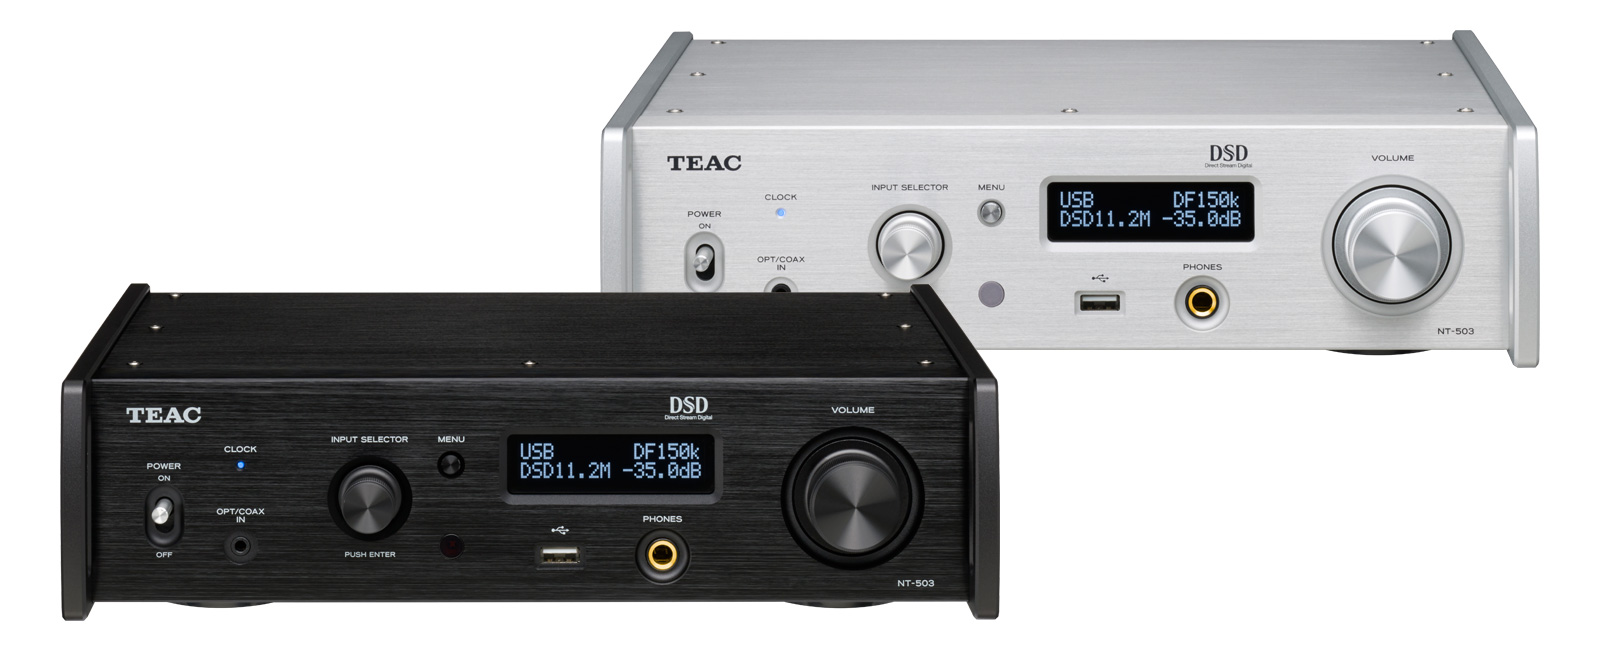 NT-503 | FEATURES | TEAC | International Website| | FEATURES